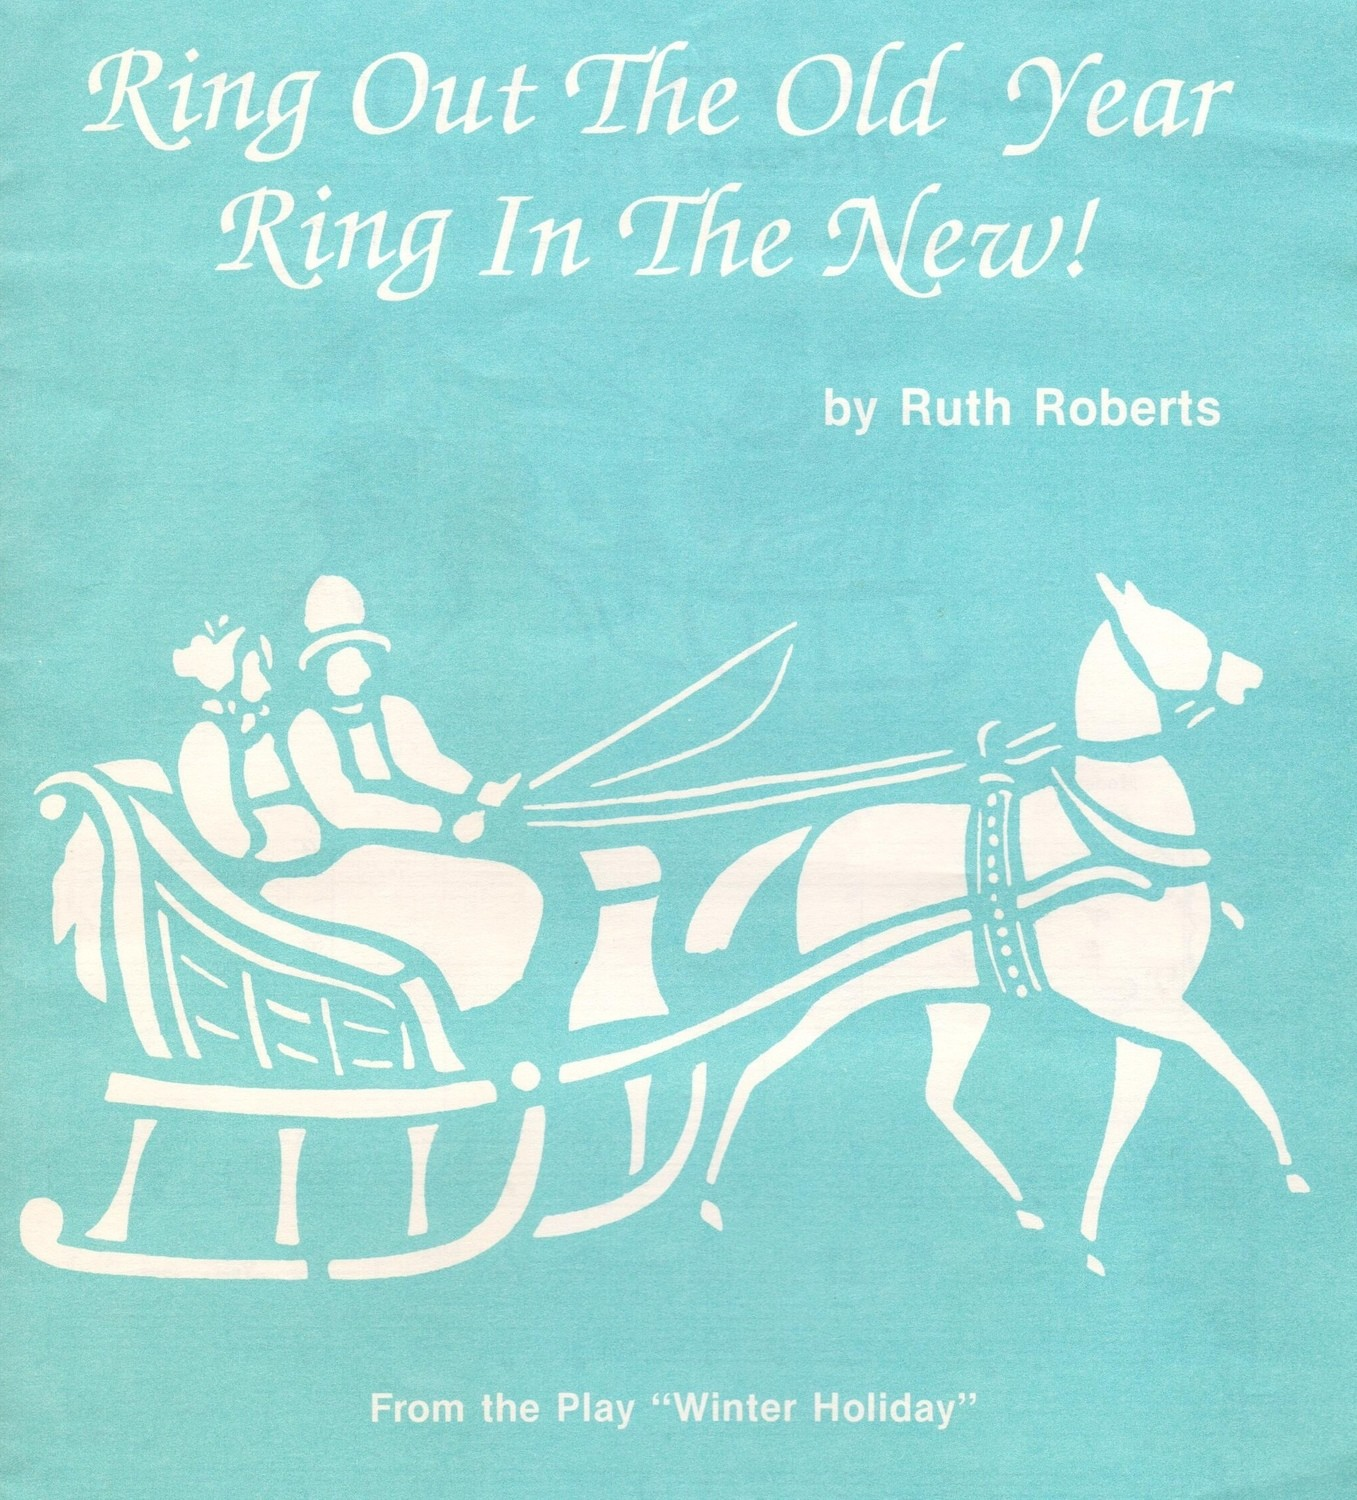 Ring out the Old Year, Ring in the New - Choral/CD Kit